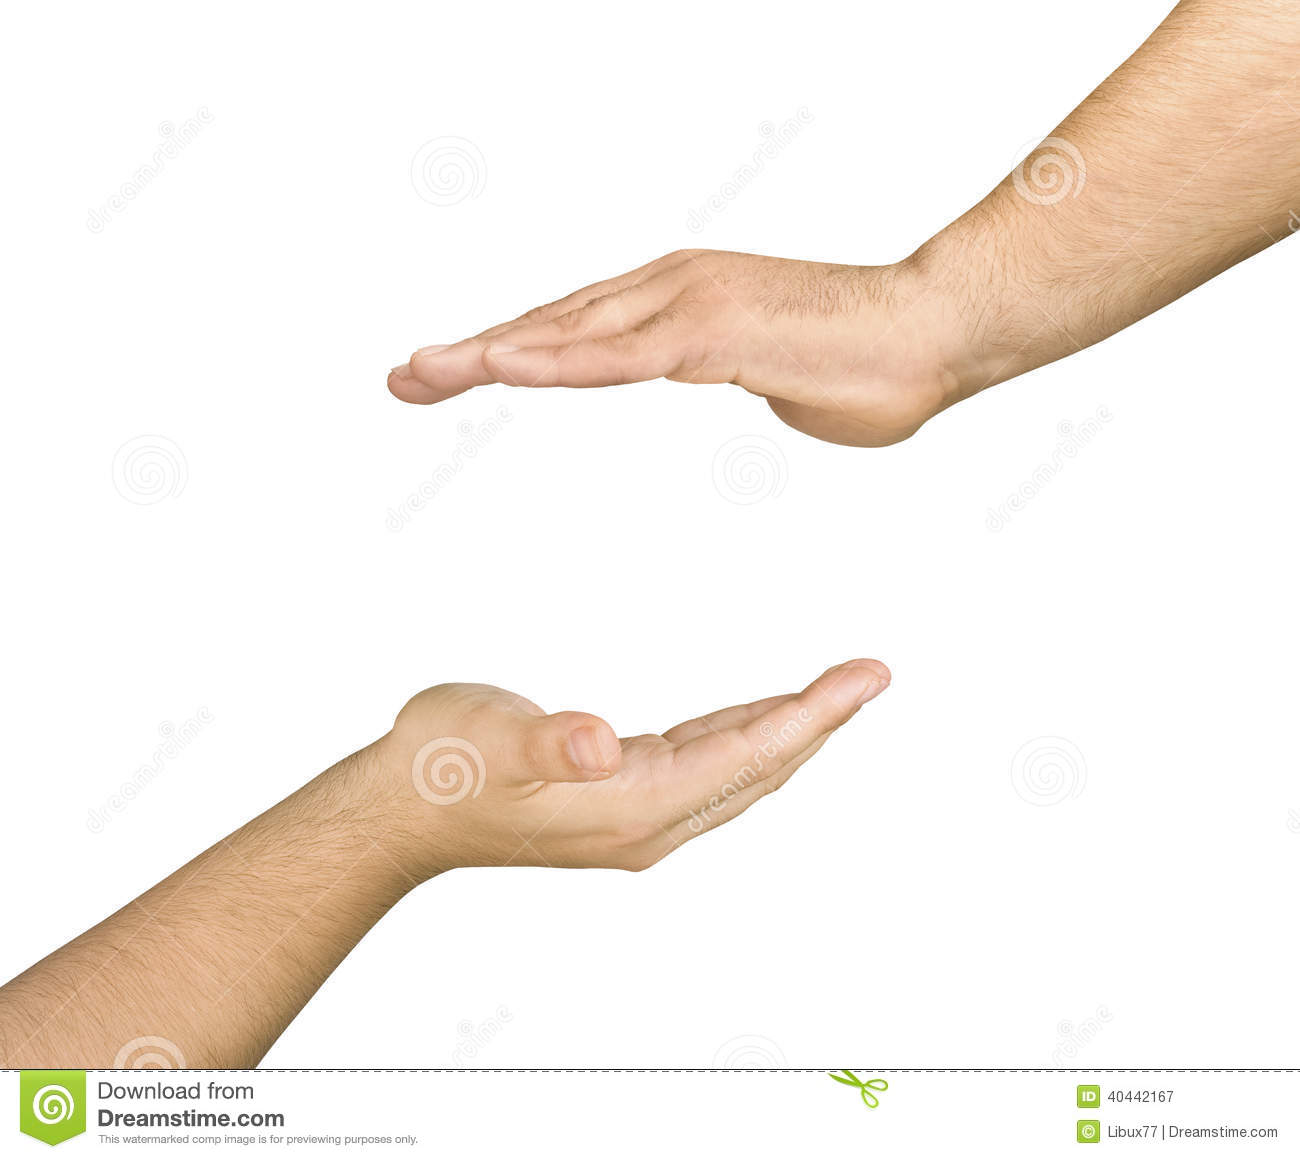 two-hands-isolated-care-gesture-male-cupped-opposed-something-to-put-white-background-40442167.jpg